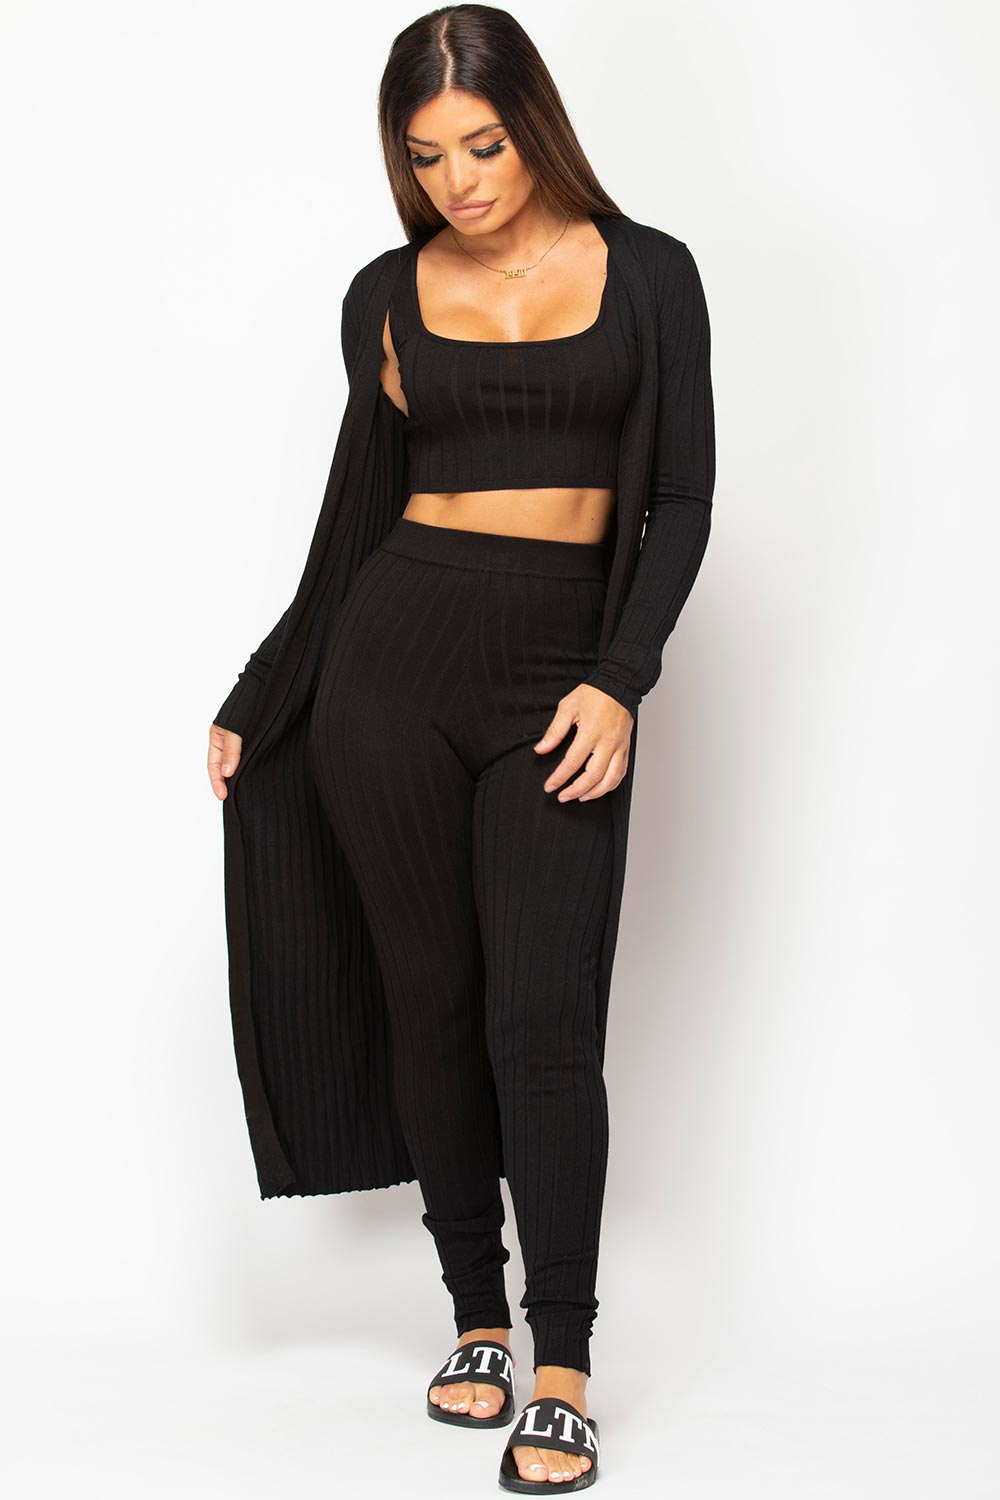 black knitted three piece loungewear set